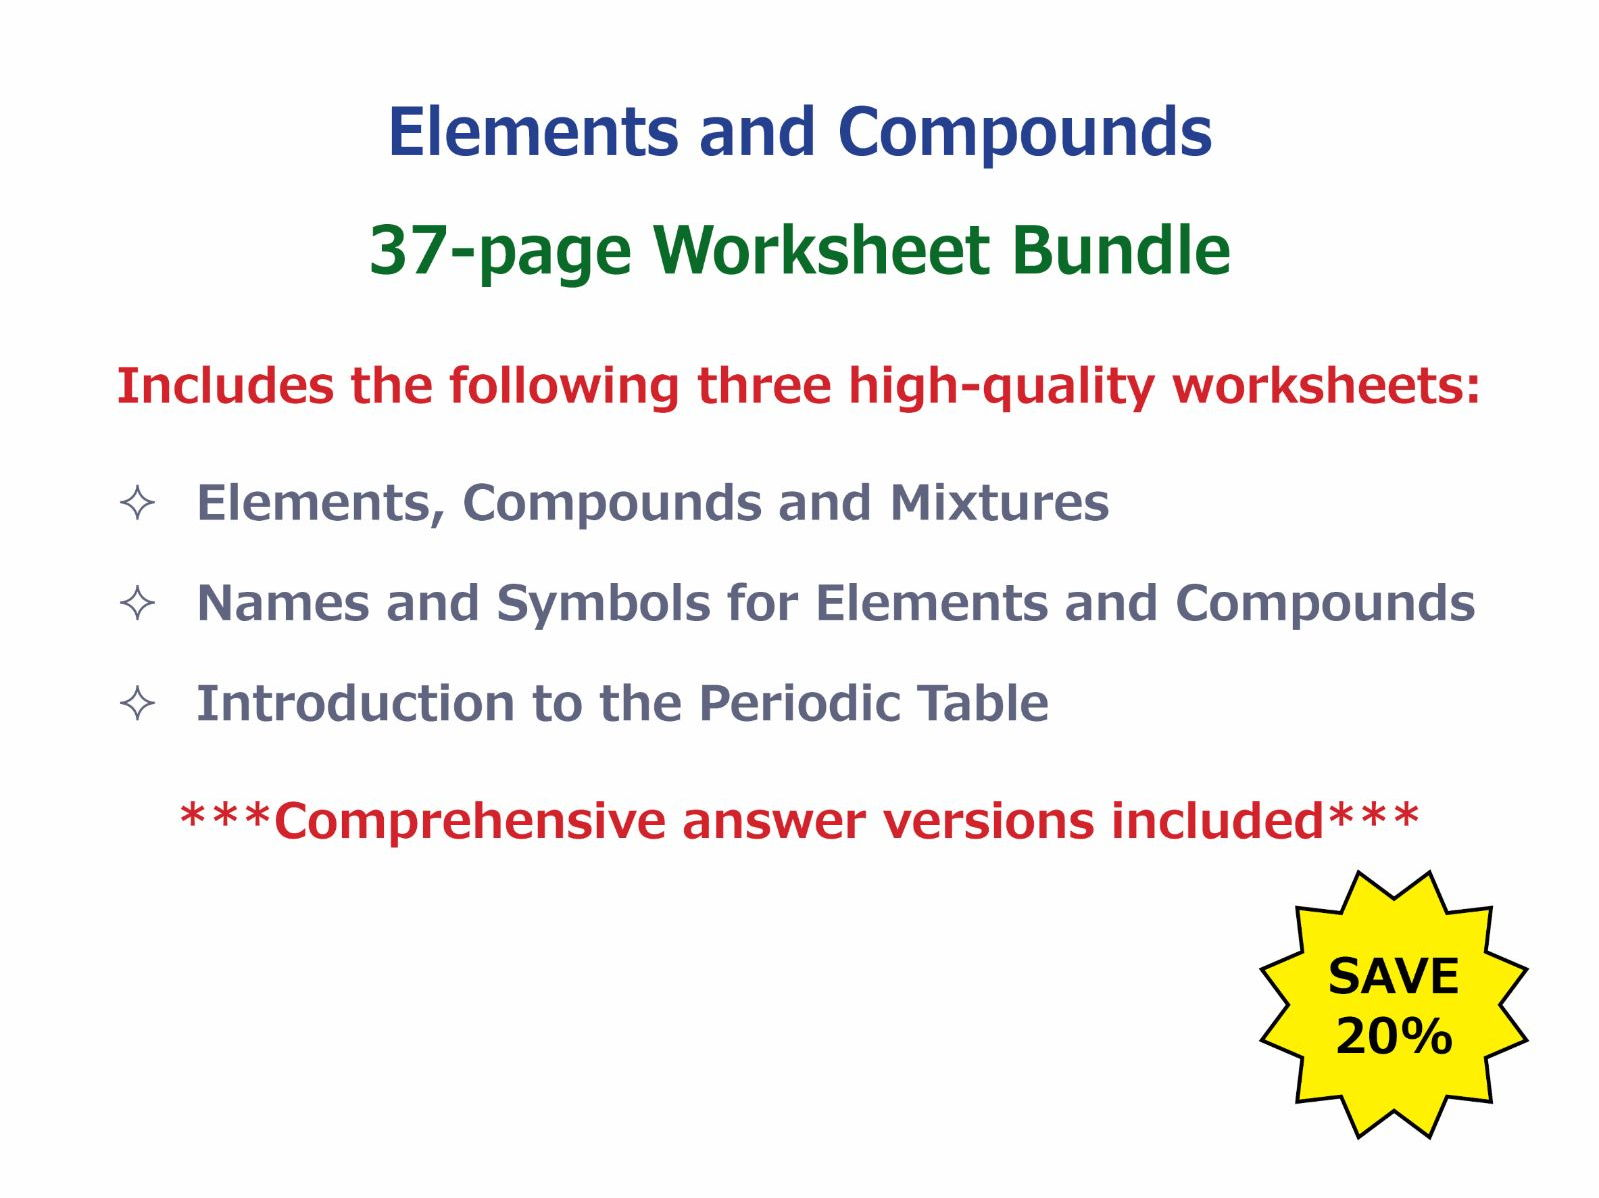 Introduction to the periodic table worksheet by introduction to the periodic table worksheet by goodscienceworksheets teaching resources tes urtaz Images